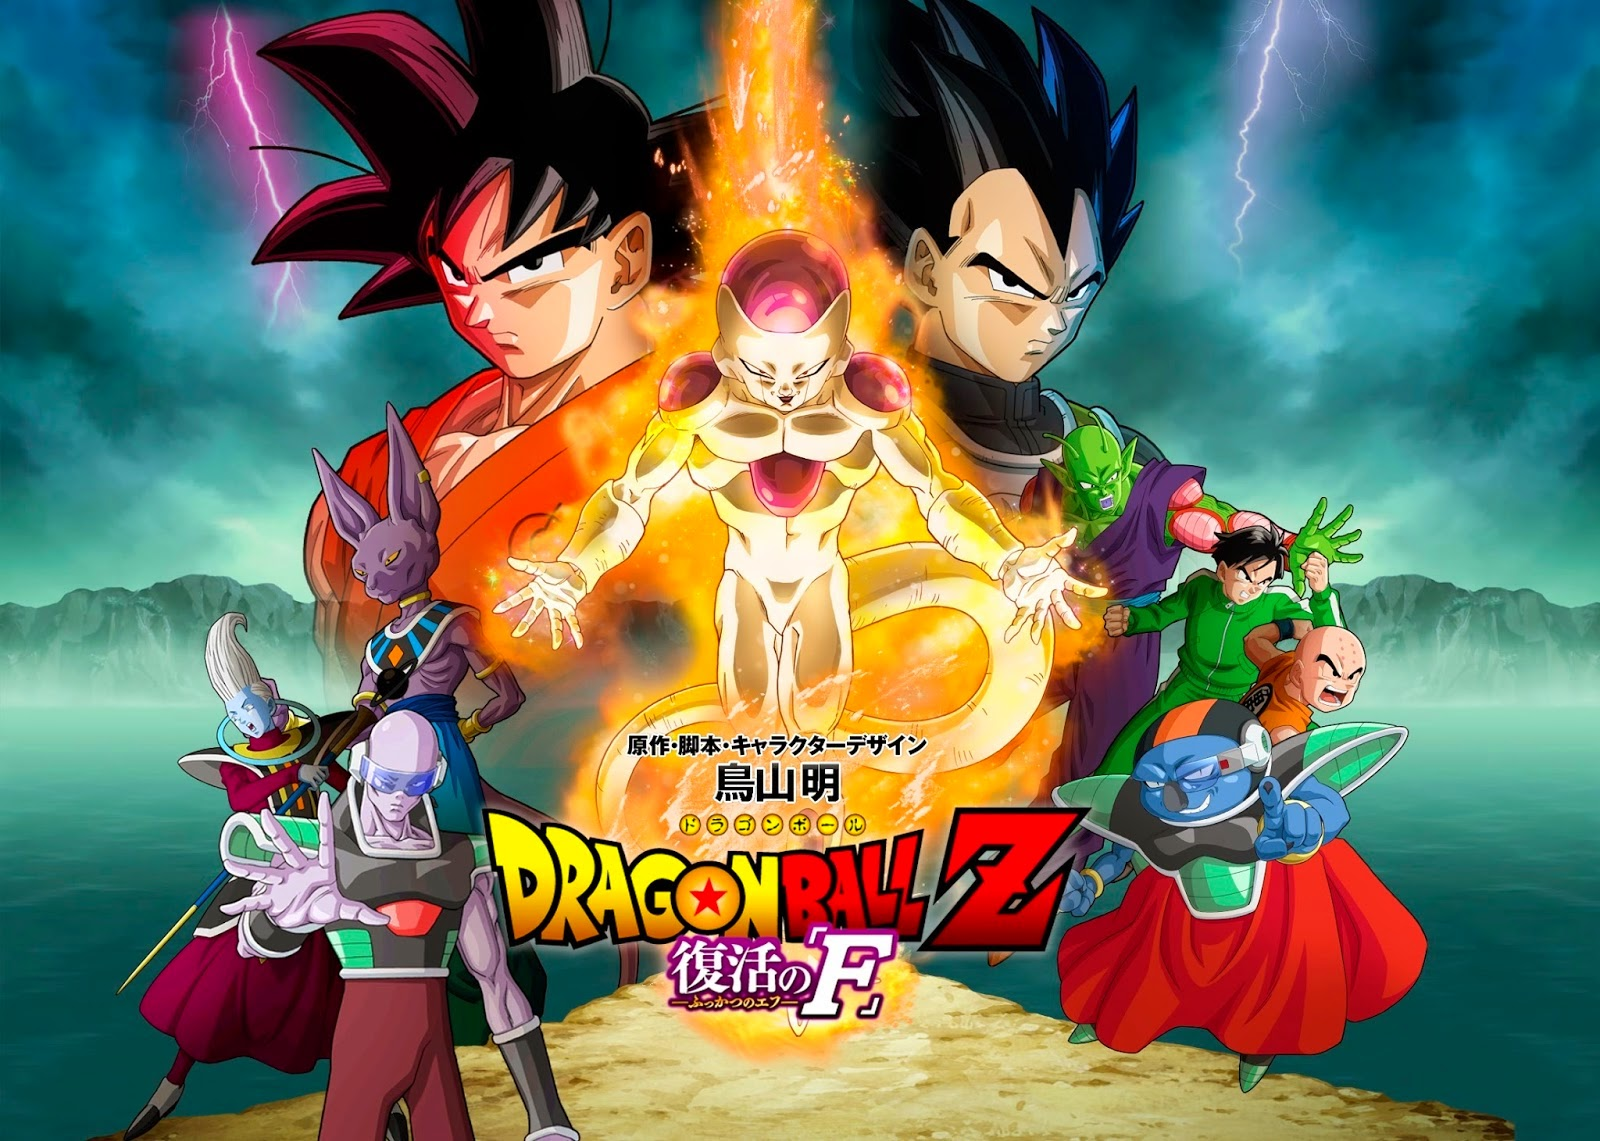 dragon ball z resurrection of f full movie download